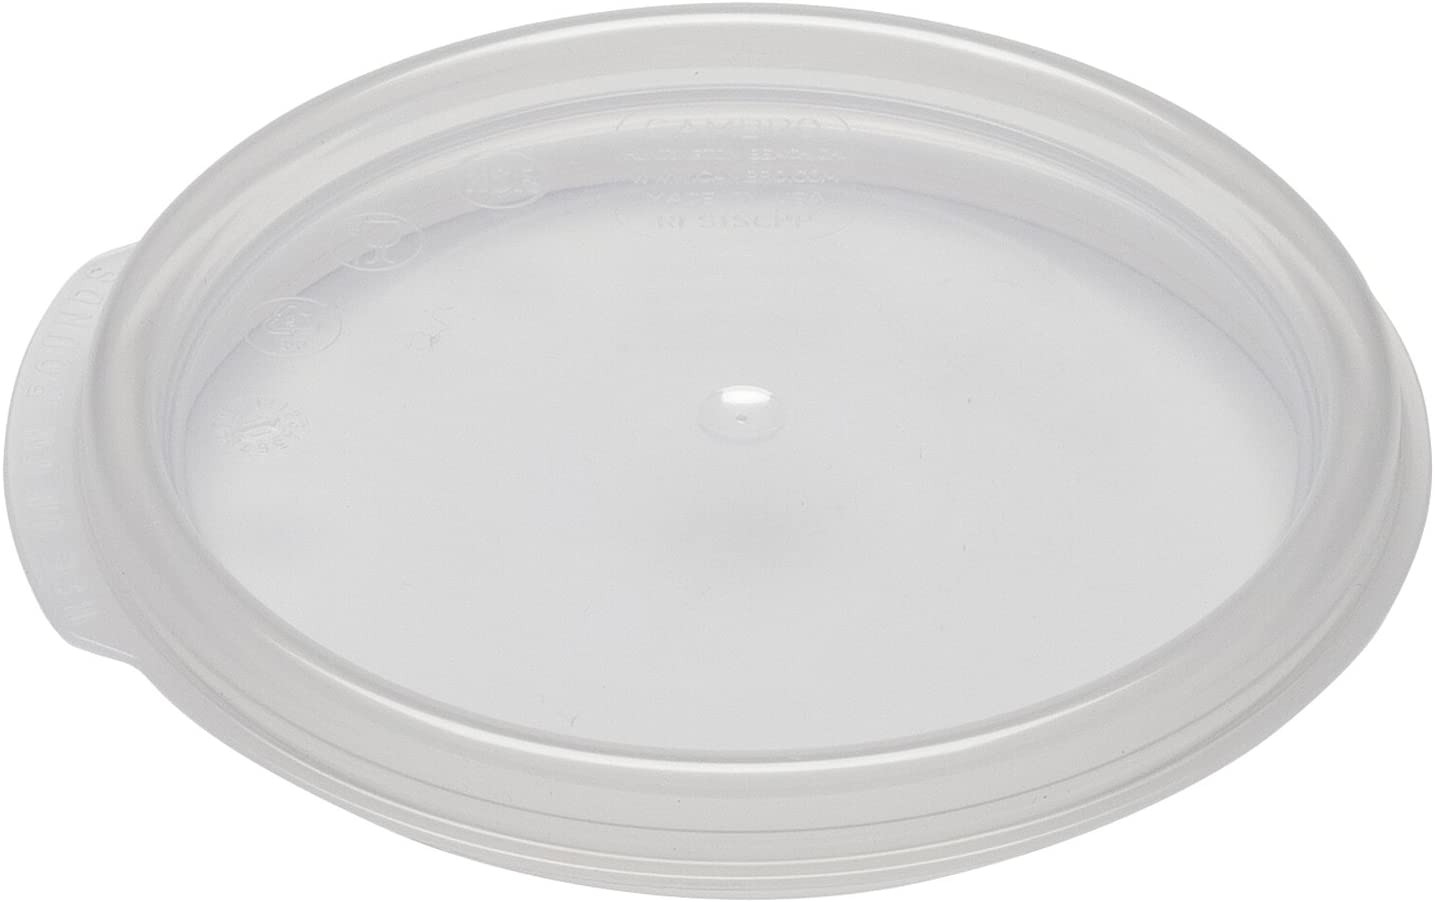 Cambro Camwear Seal Cover for 1 Quart Camwear Round Food Storage Containers, Clear